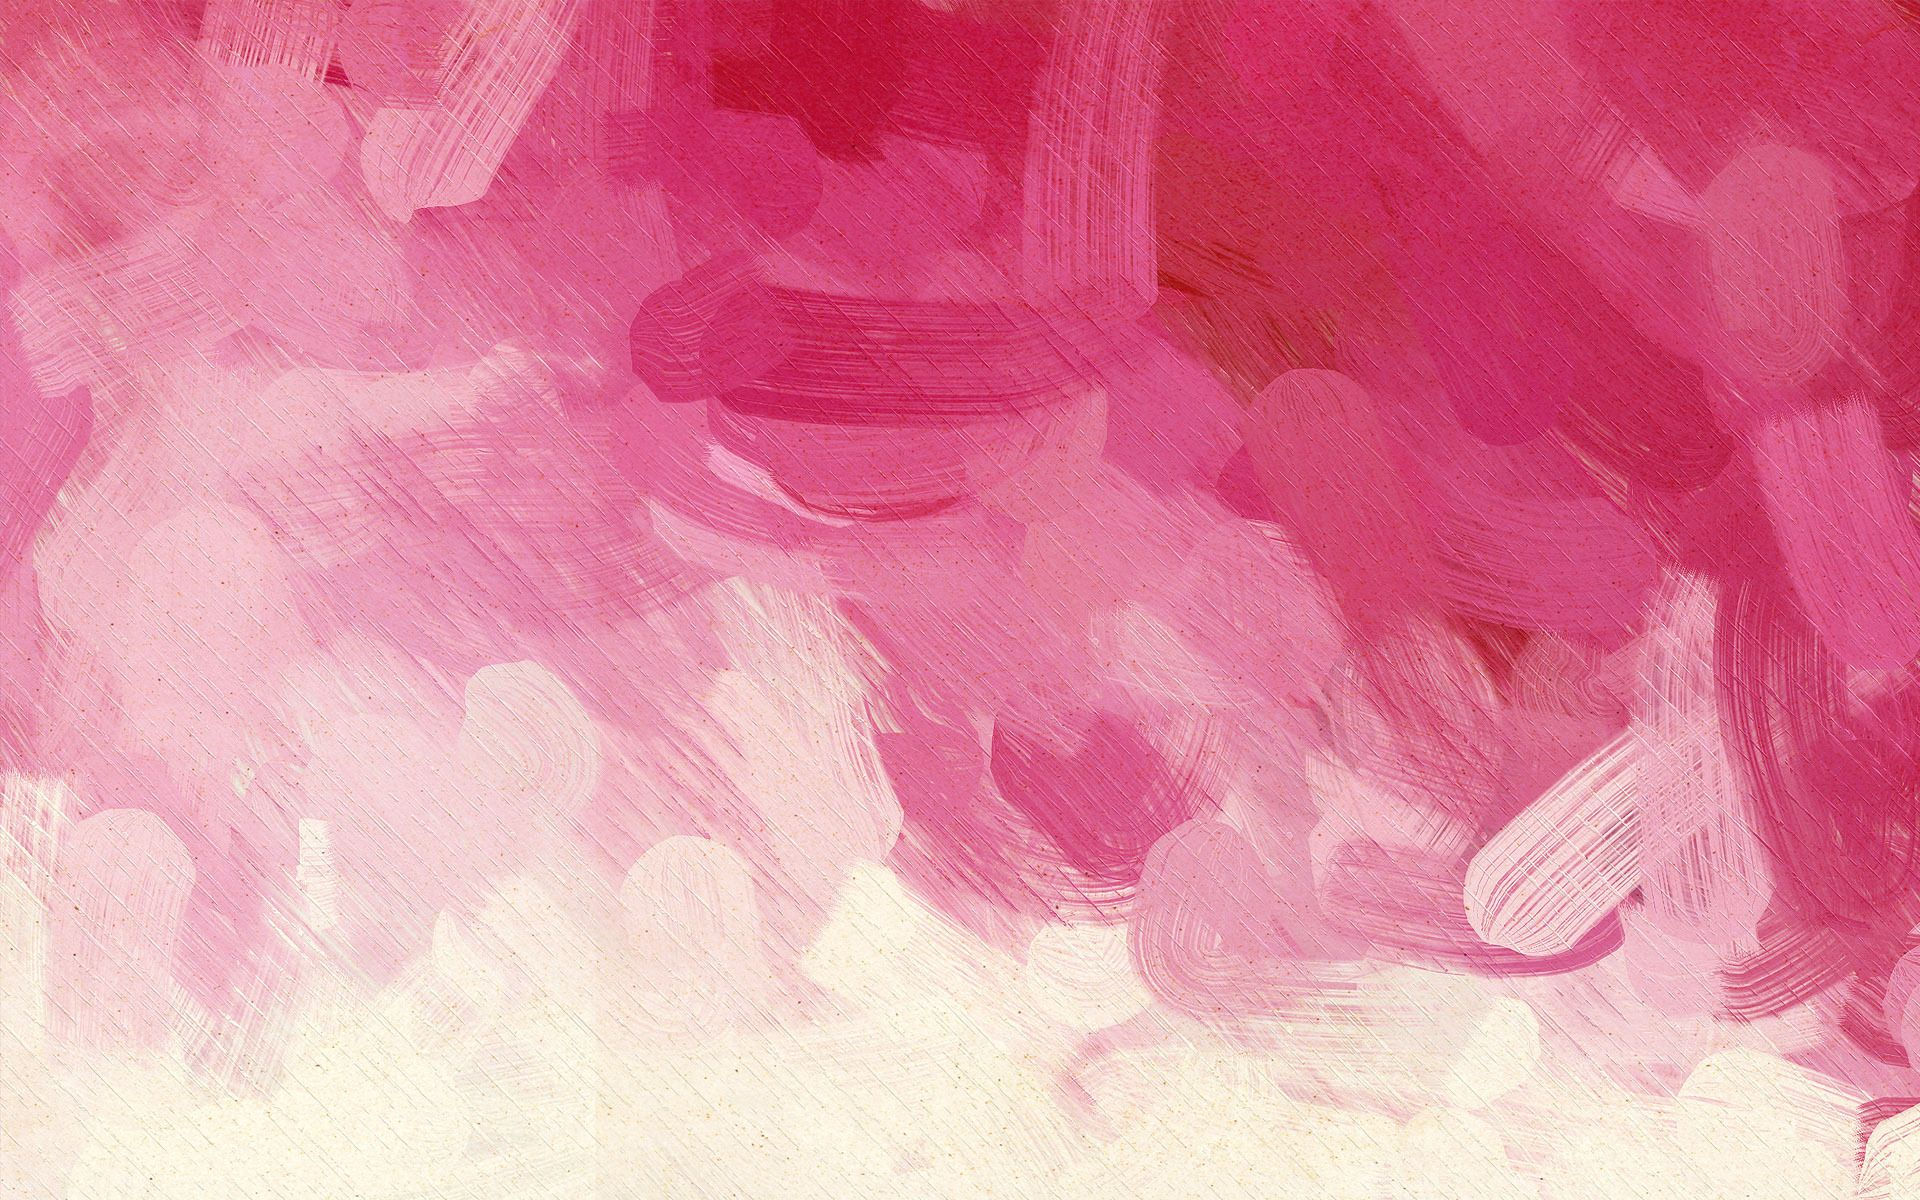 Pink Paint Strokes Wallpaper Watercolor Art Diy Abstract